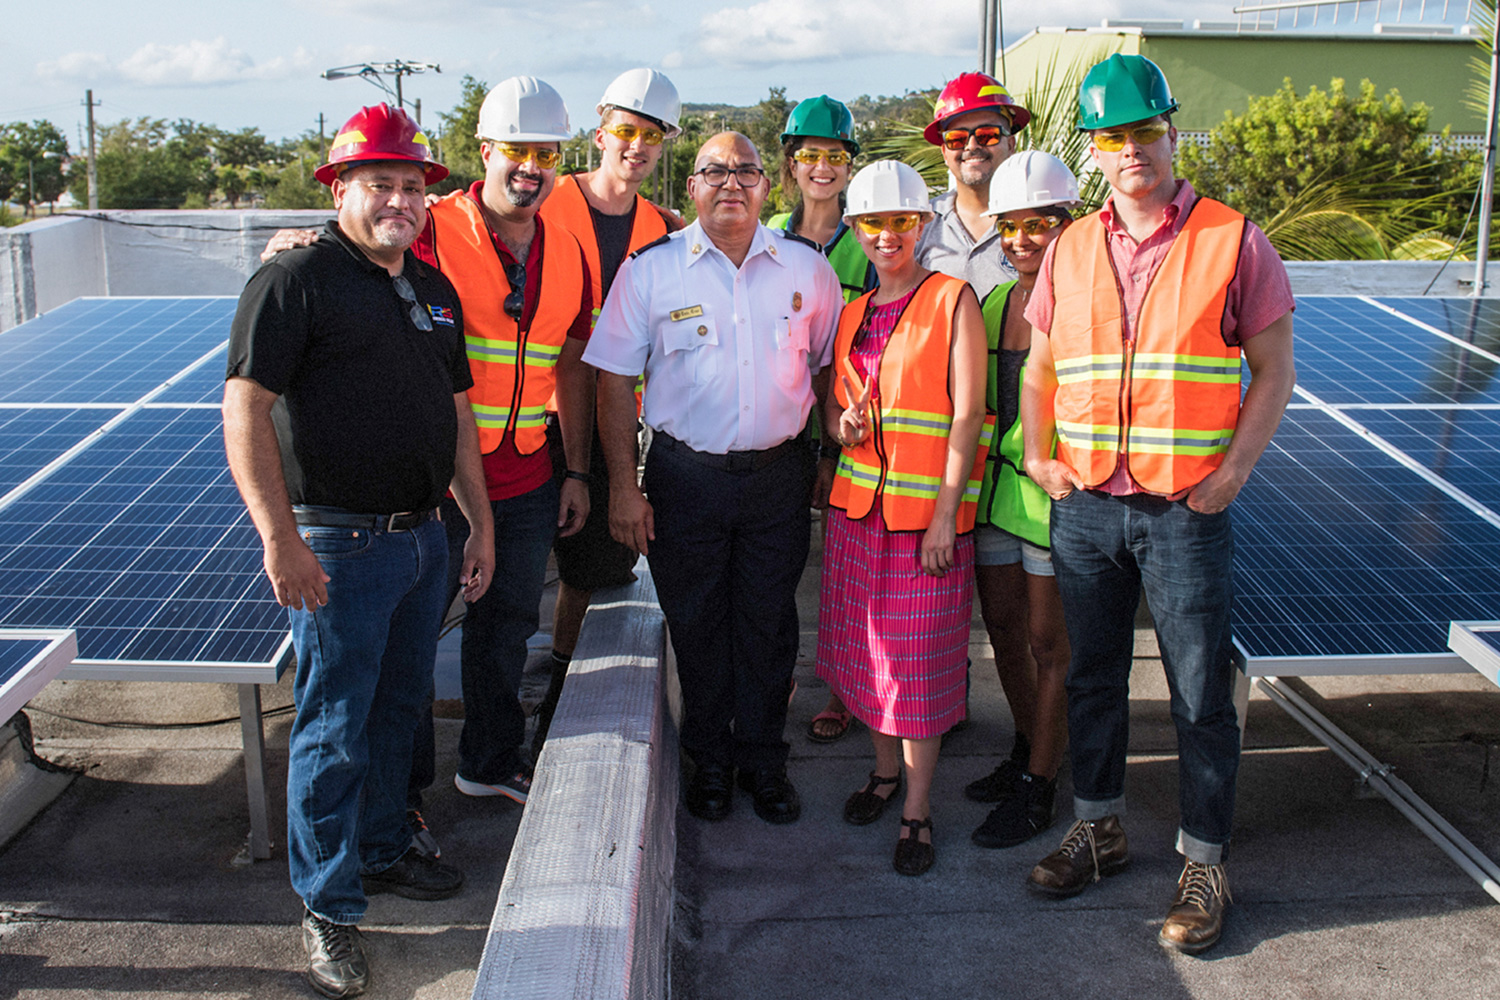 Hunter (behind man in white shirt, Colin Jost to the right) and Scarlett Johansson OMAZE project details:photos are from January 2019 on top of the fire stations in Rincon, Puerto Rico. The solar and battery storage installation will power the critical needs of firefighters that serve the municipality of Rincon, PR. The other people pictured are part of the local solar installation team - the company is called AZ Engineering.